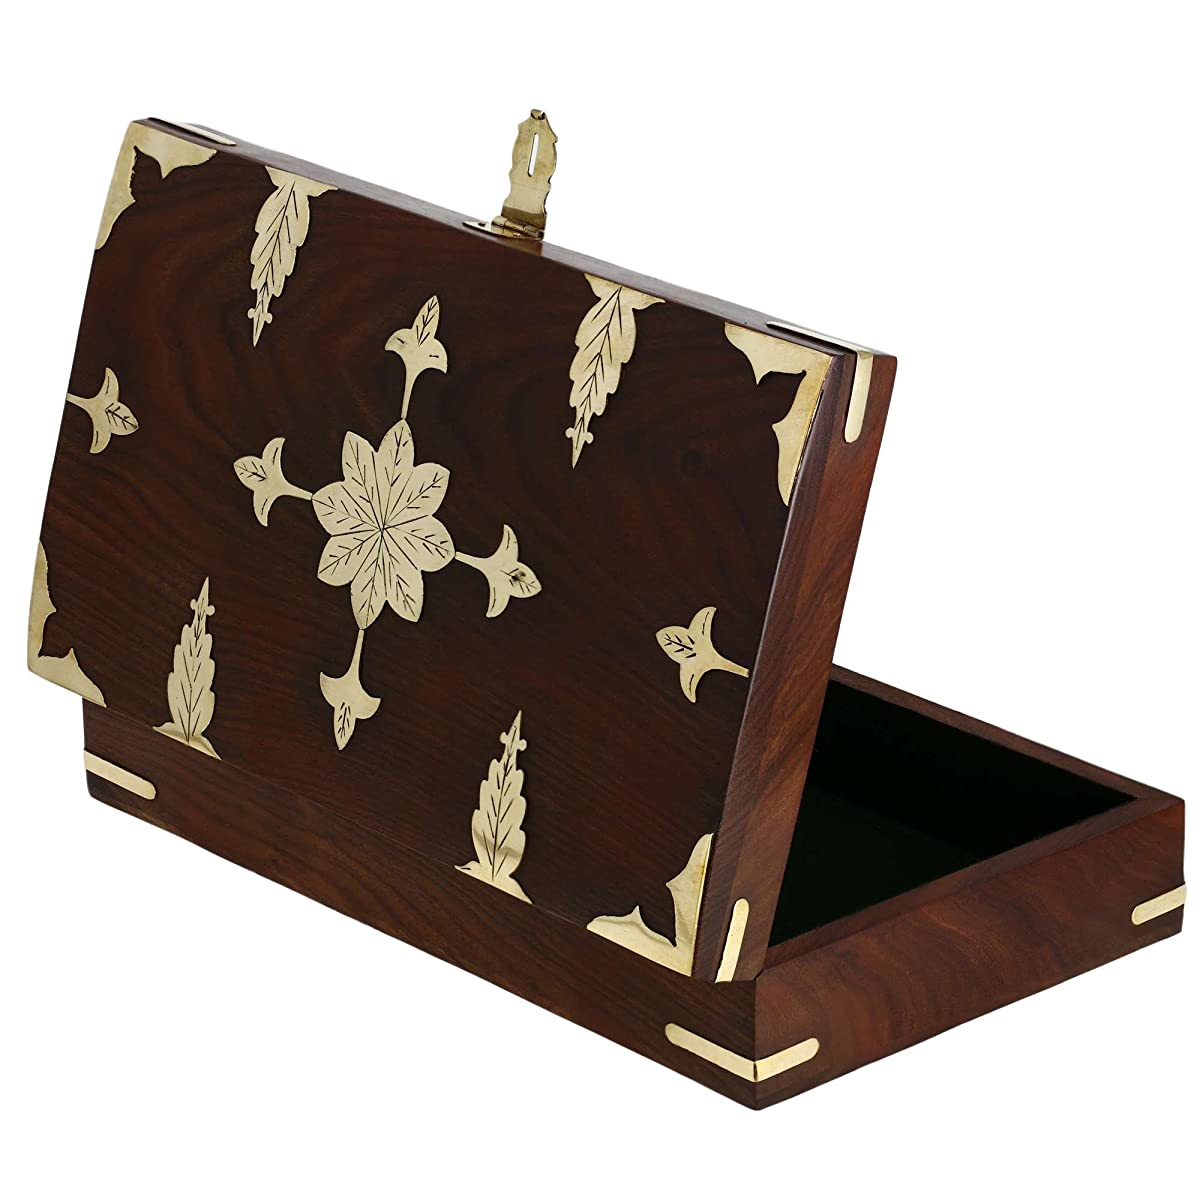 Antique Style Indian Handmade Wooden Jewelry Box For Women 12 X 7 X 2.5 Inch